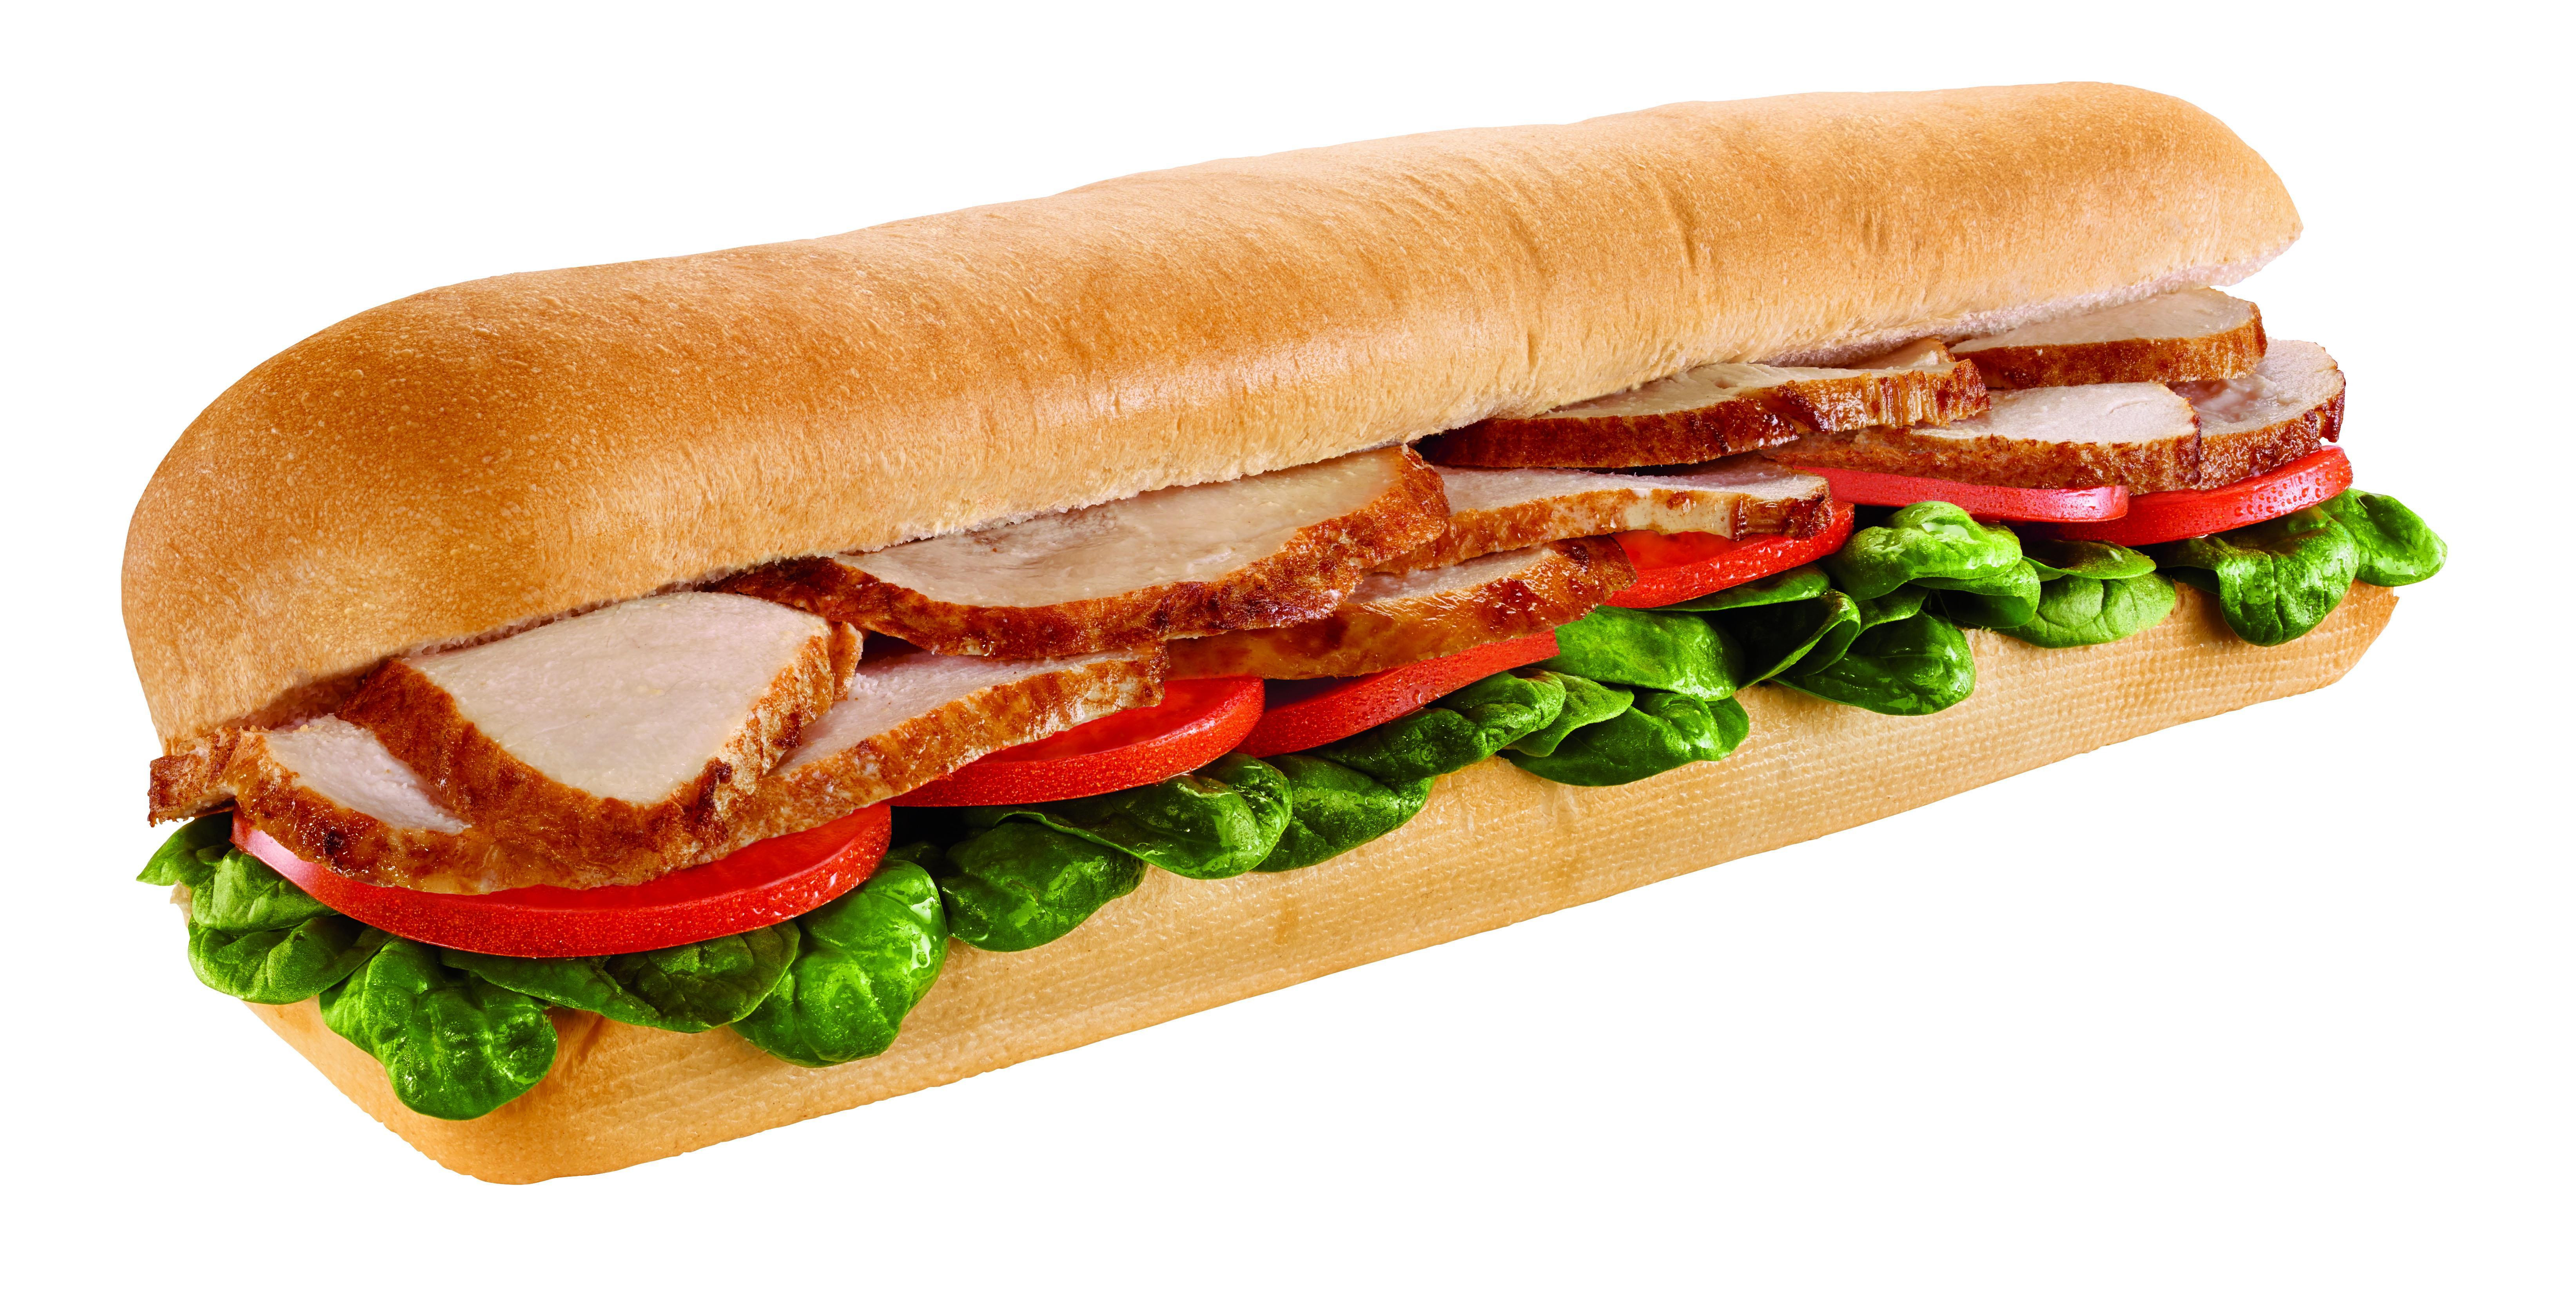 Subway Turkey Sandwiches  Thanksgiving es Early to Subway With New Carved Turkey